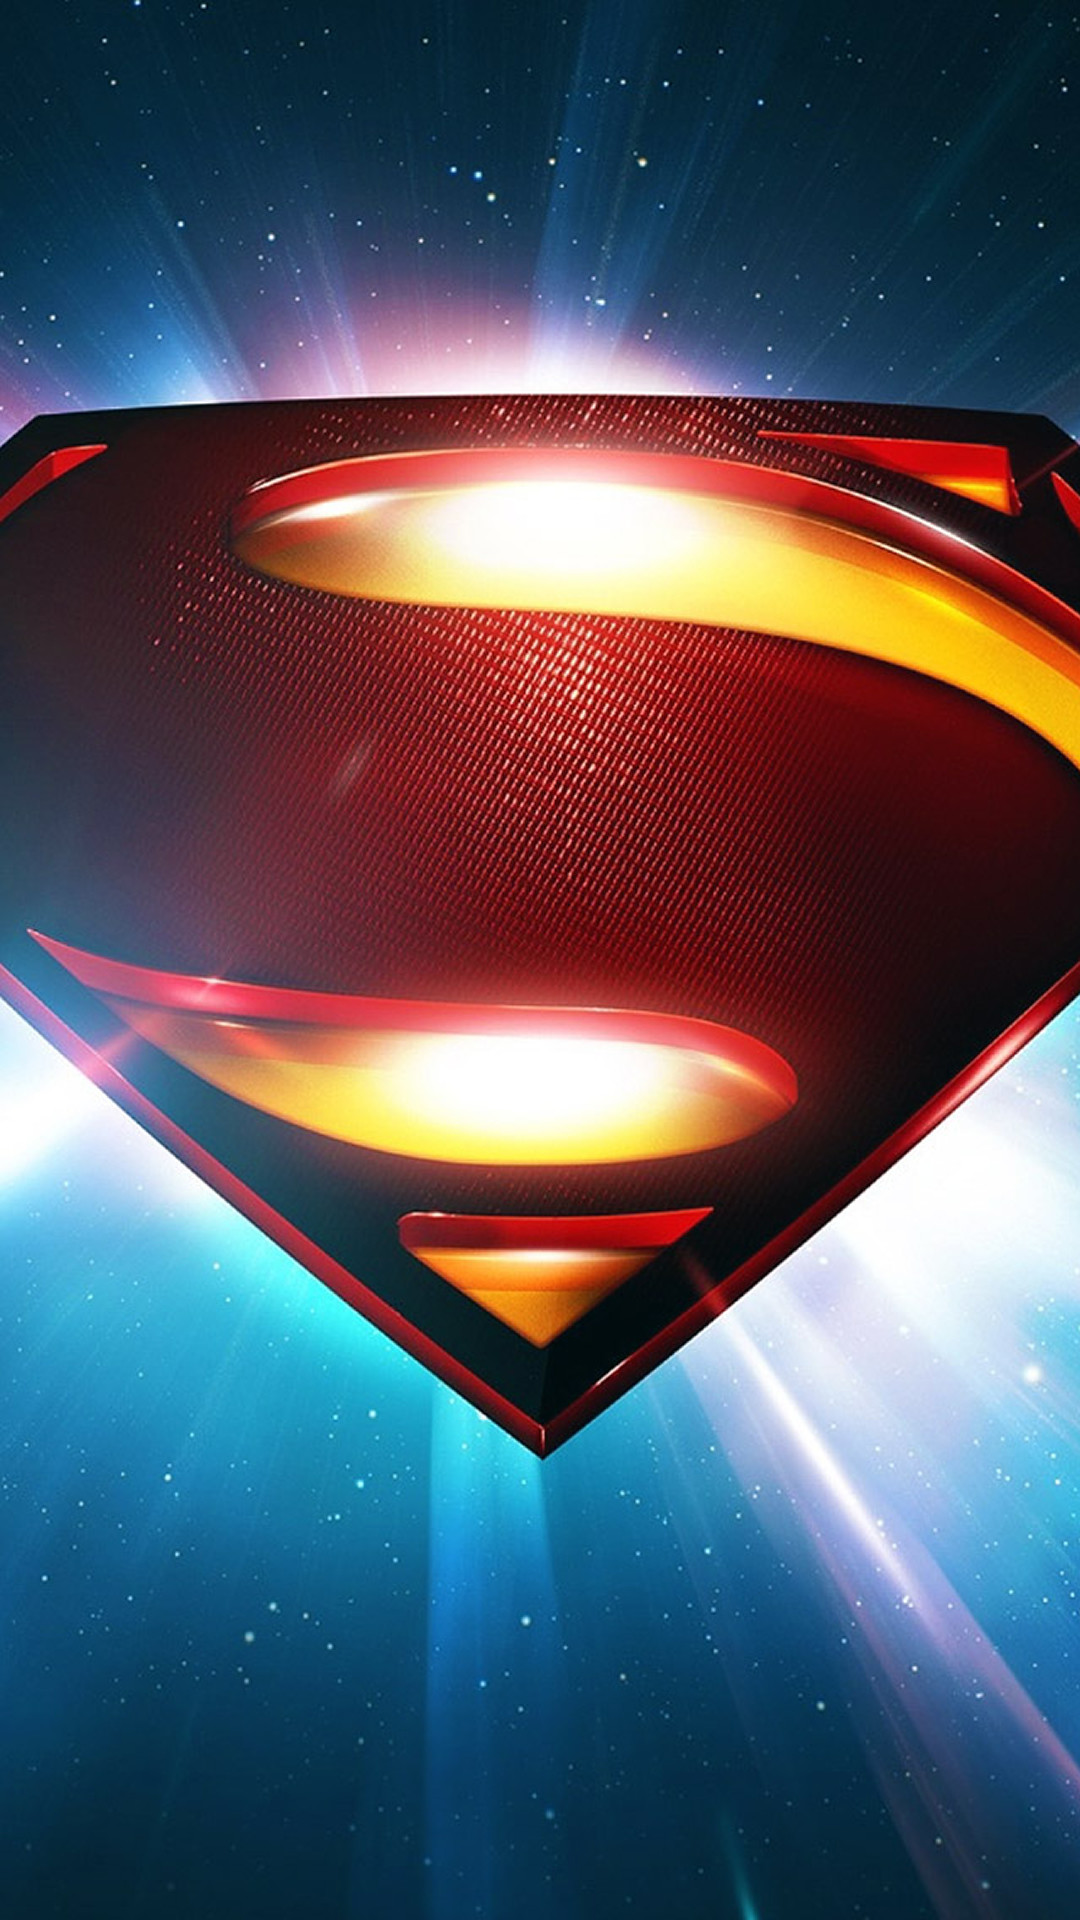 1080x1920 Superman Space Logo Man Of Steel iPhone 6 wallpaper